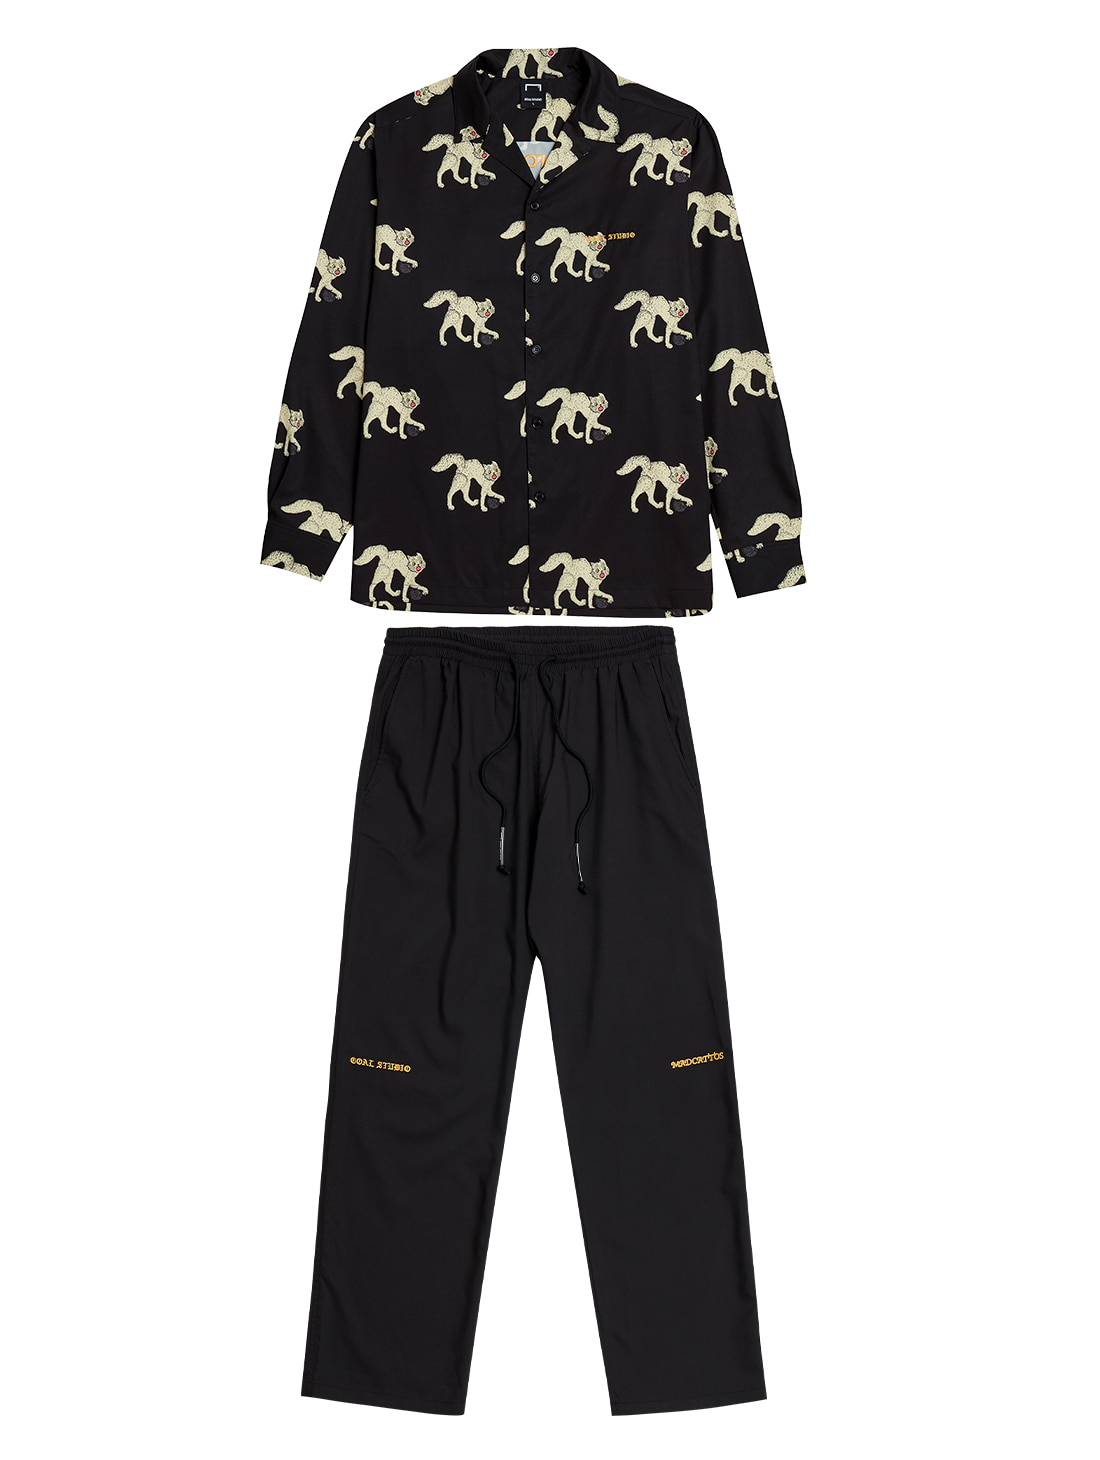 [10% OFF] MC ALL OVER PATTERN SHIRTS & PANTS SET - BLACK